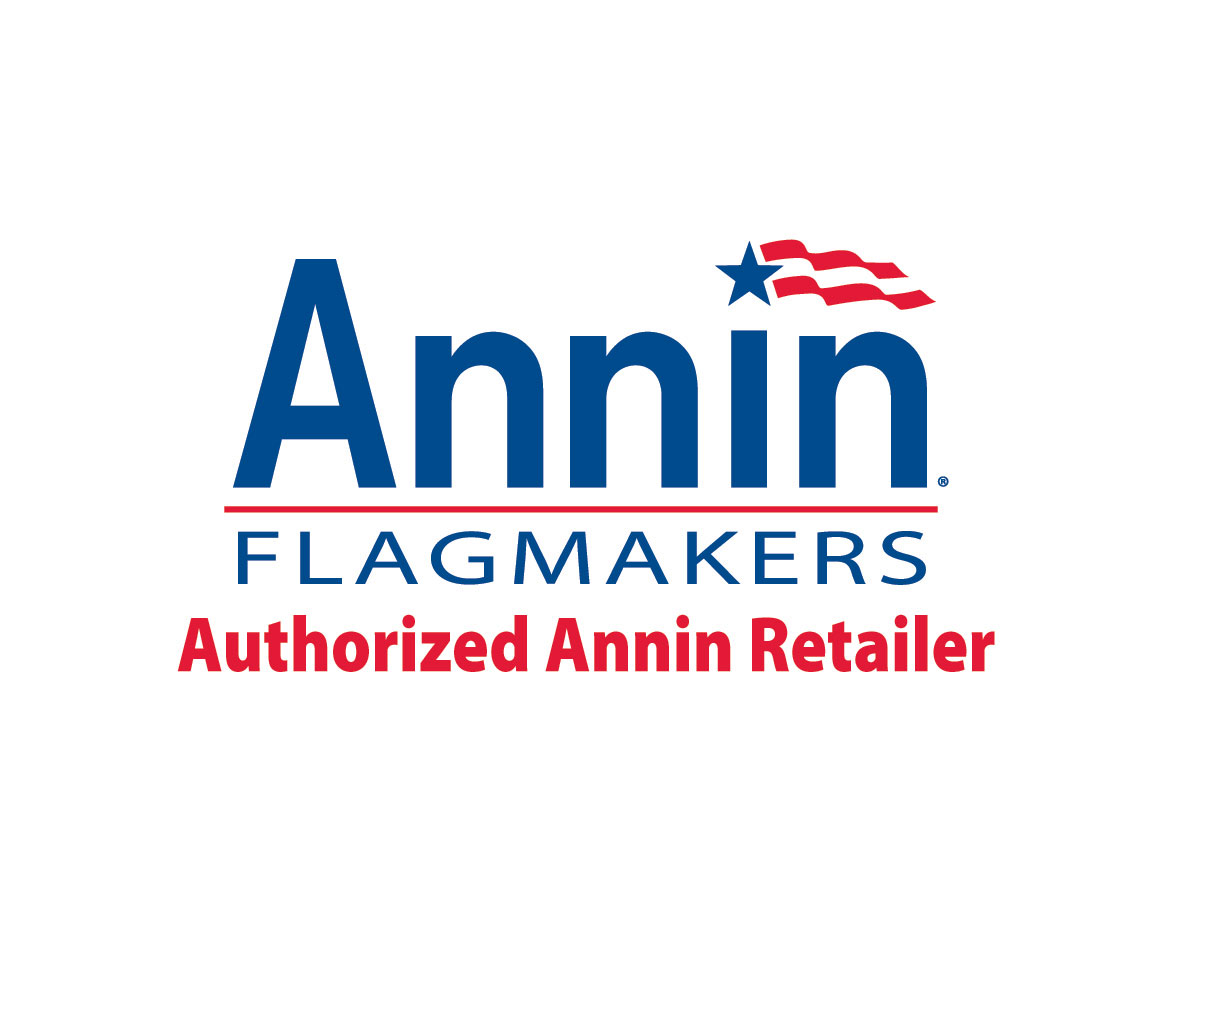 Annin U.S. Tough-Tex Heavy Duty Polyester Outdoor Flags Annin's Tough- Tex fabric resists high winds and wears longer. This is the longest lasting flag made. It has the brightest fade-resistant colors and a special weave to improve it's flying ability. Greatest Durability and Best Appearance.